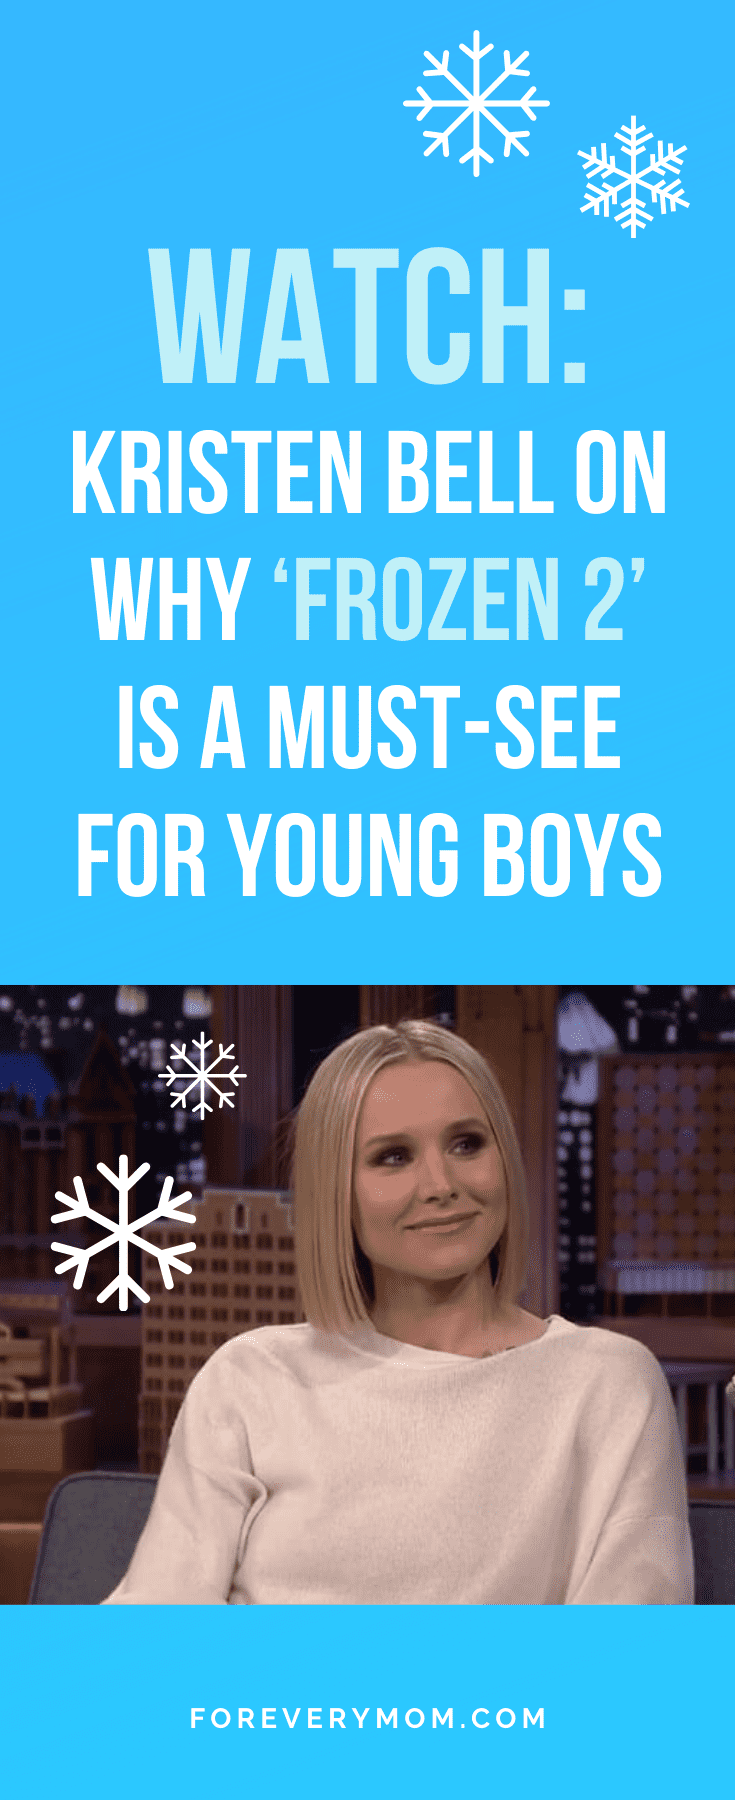 Kristen Bell Peed Pants While Pregnant, Thought Her Water